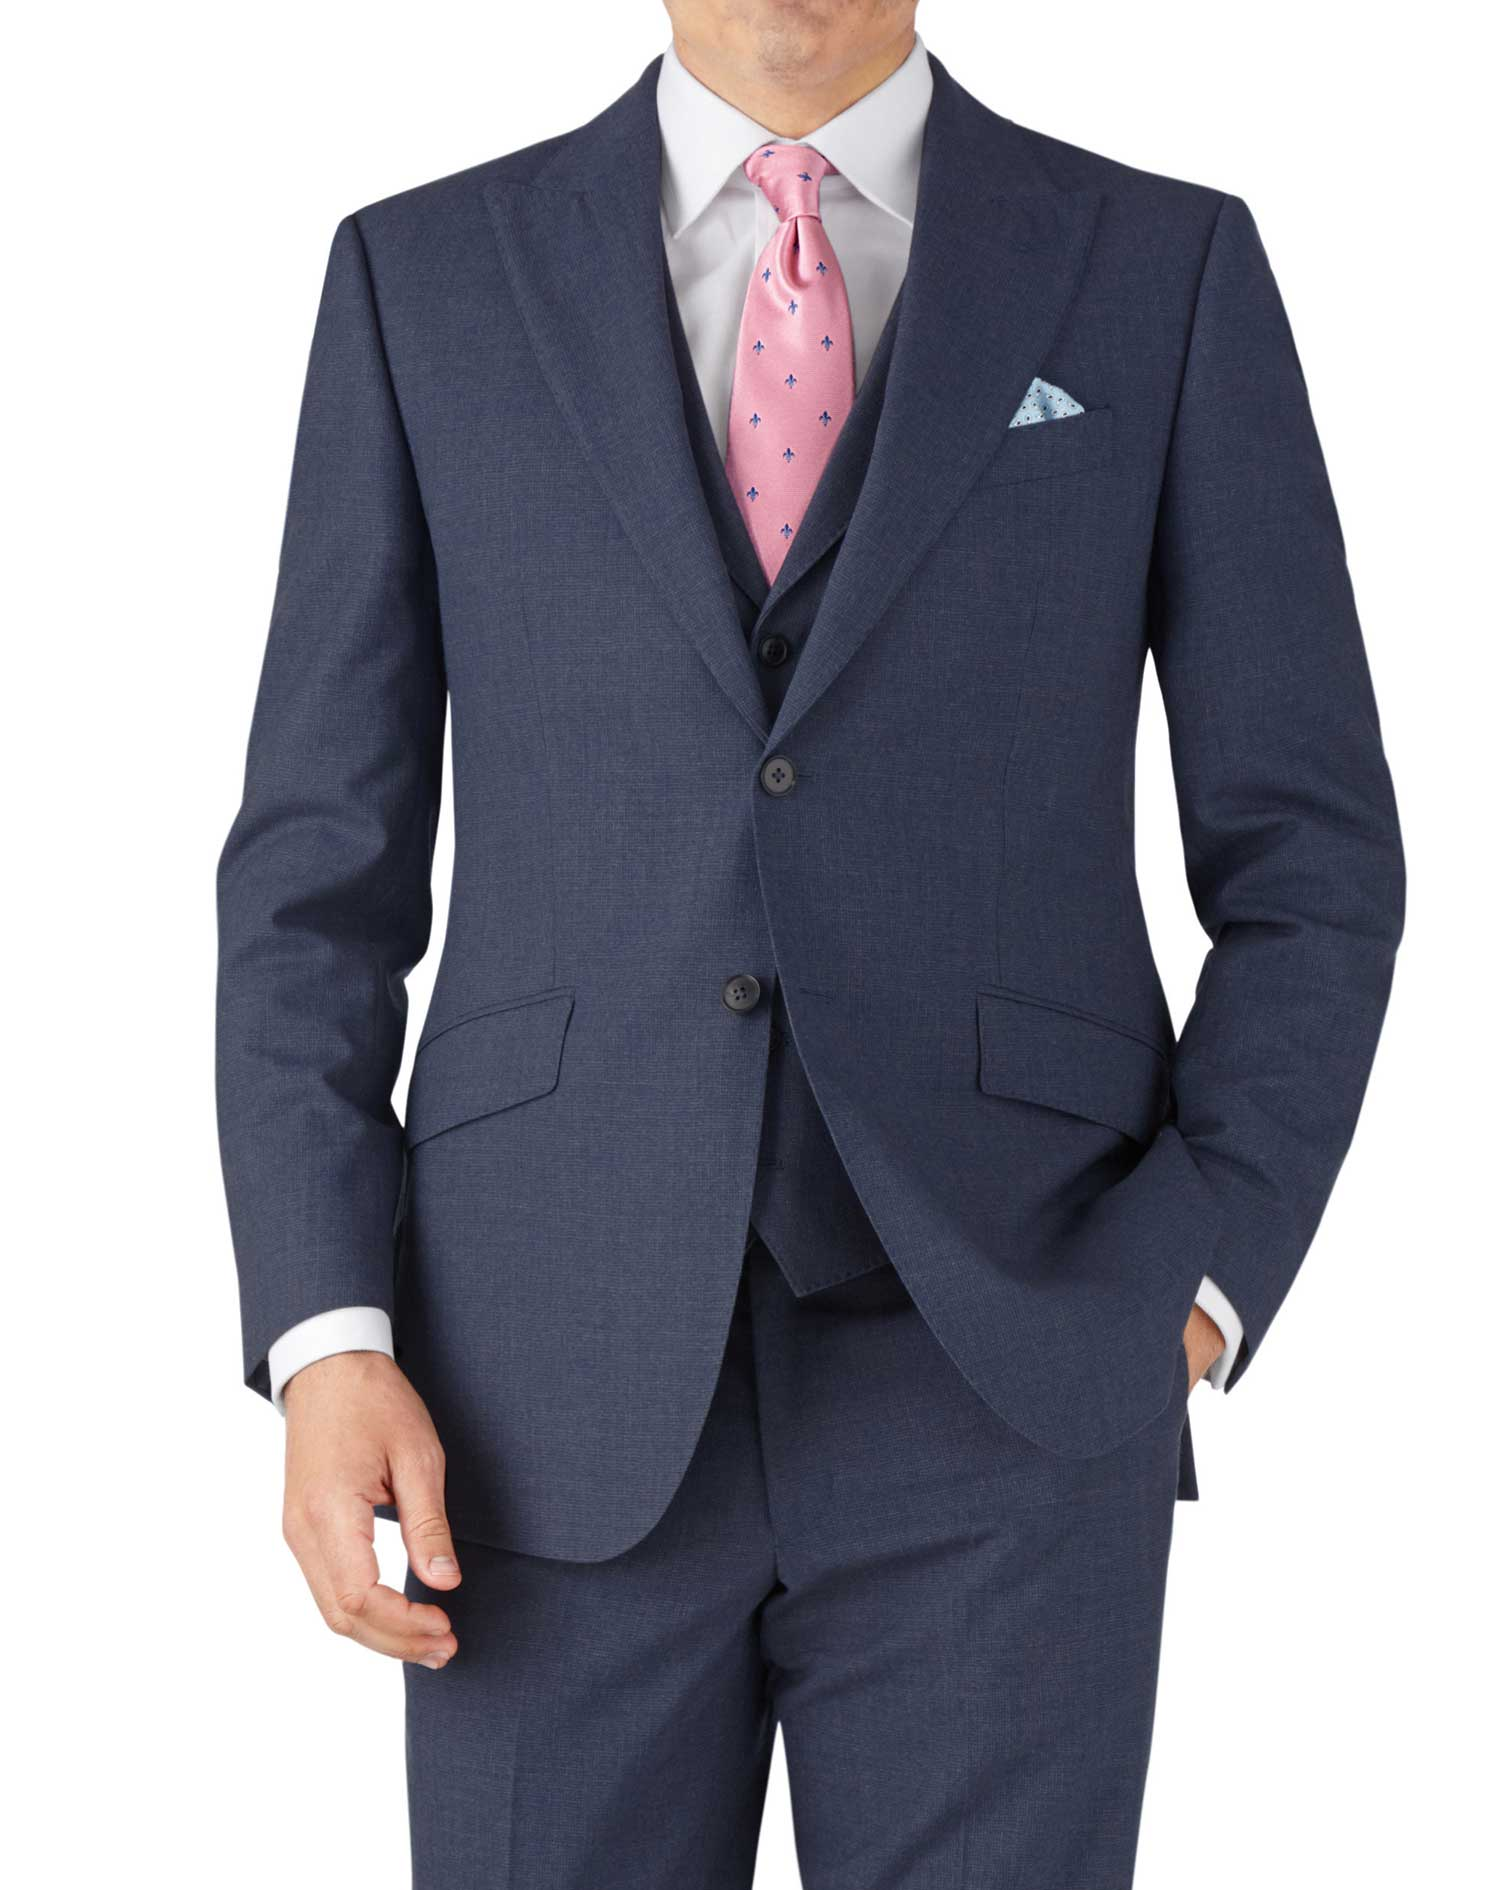 Airforce Blue Puppytooth Classic Fit Panama Business Suit Wool Jacket Size 40 Short by Charles Tyrwh